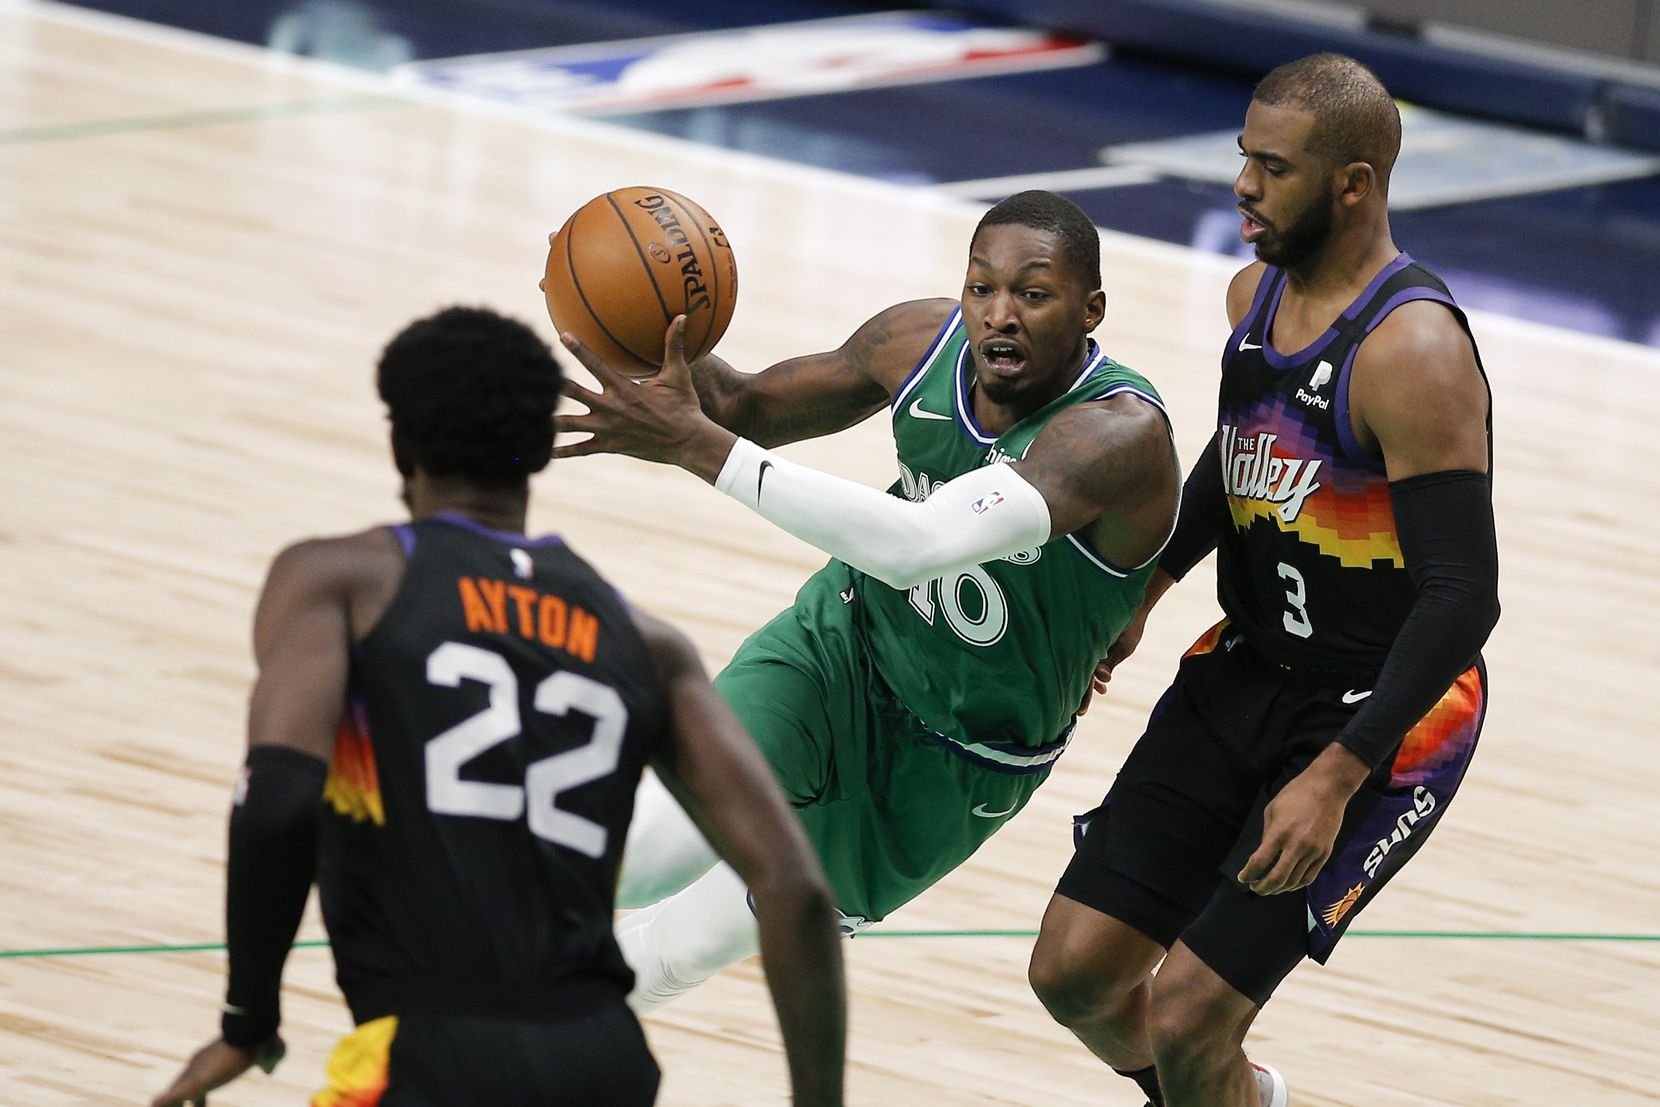 Dallas Mavericks forward Dorian Finney-Smith (10) battles Phoenix Suns forward Deandre Ayton (22) and guard Chris Paul (3) for space during the second half of an NBA basketball game in Dallas, Saturday, January 30, 2021. (Brandon Wade/Special Contributor)